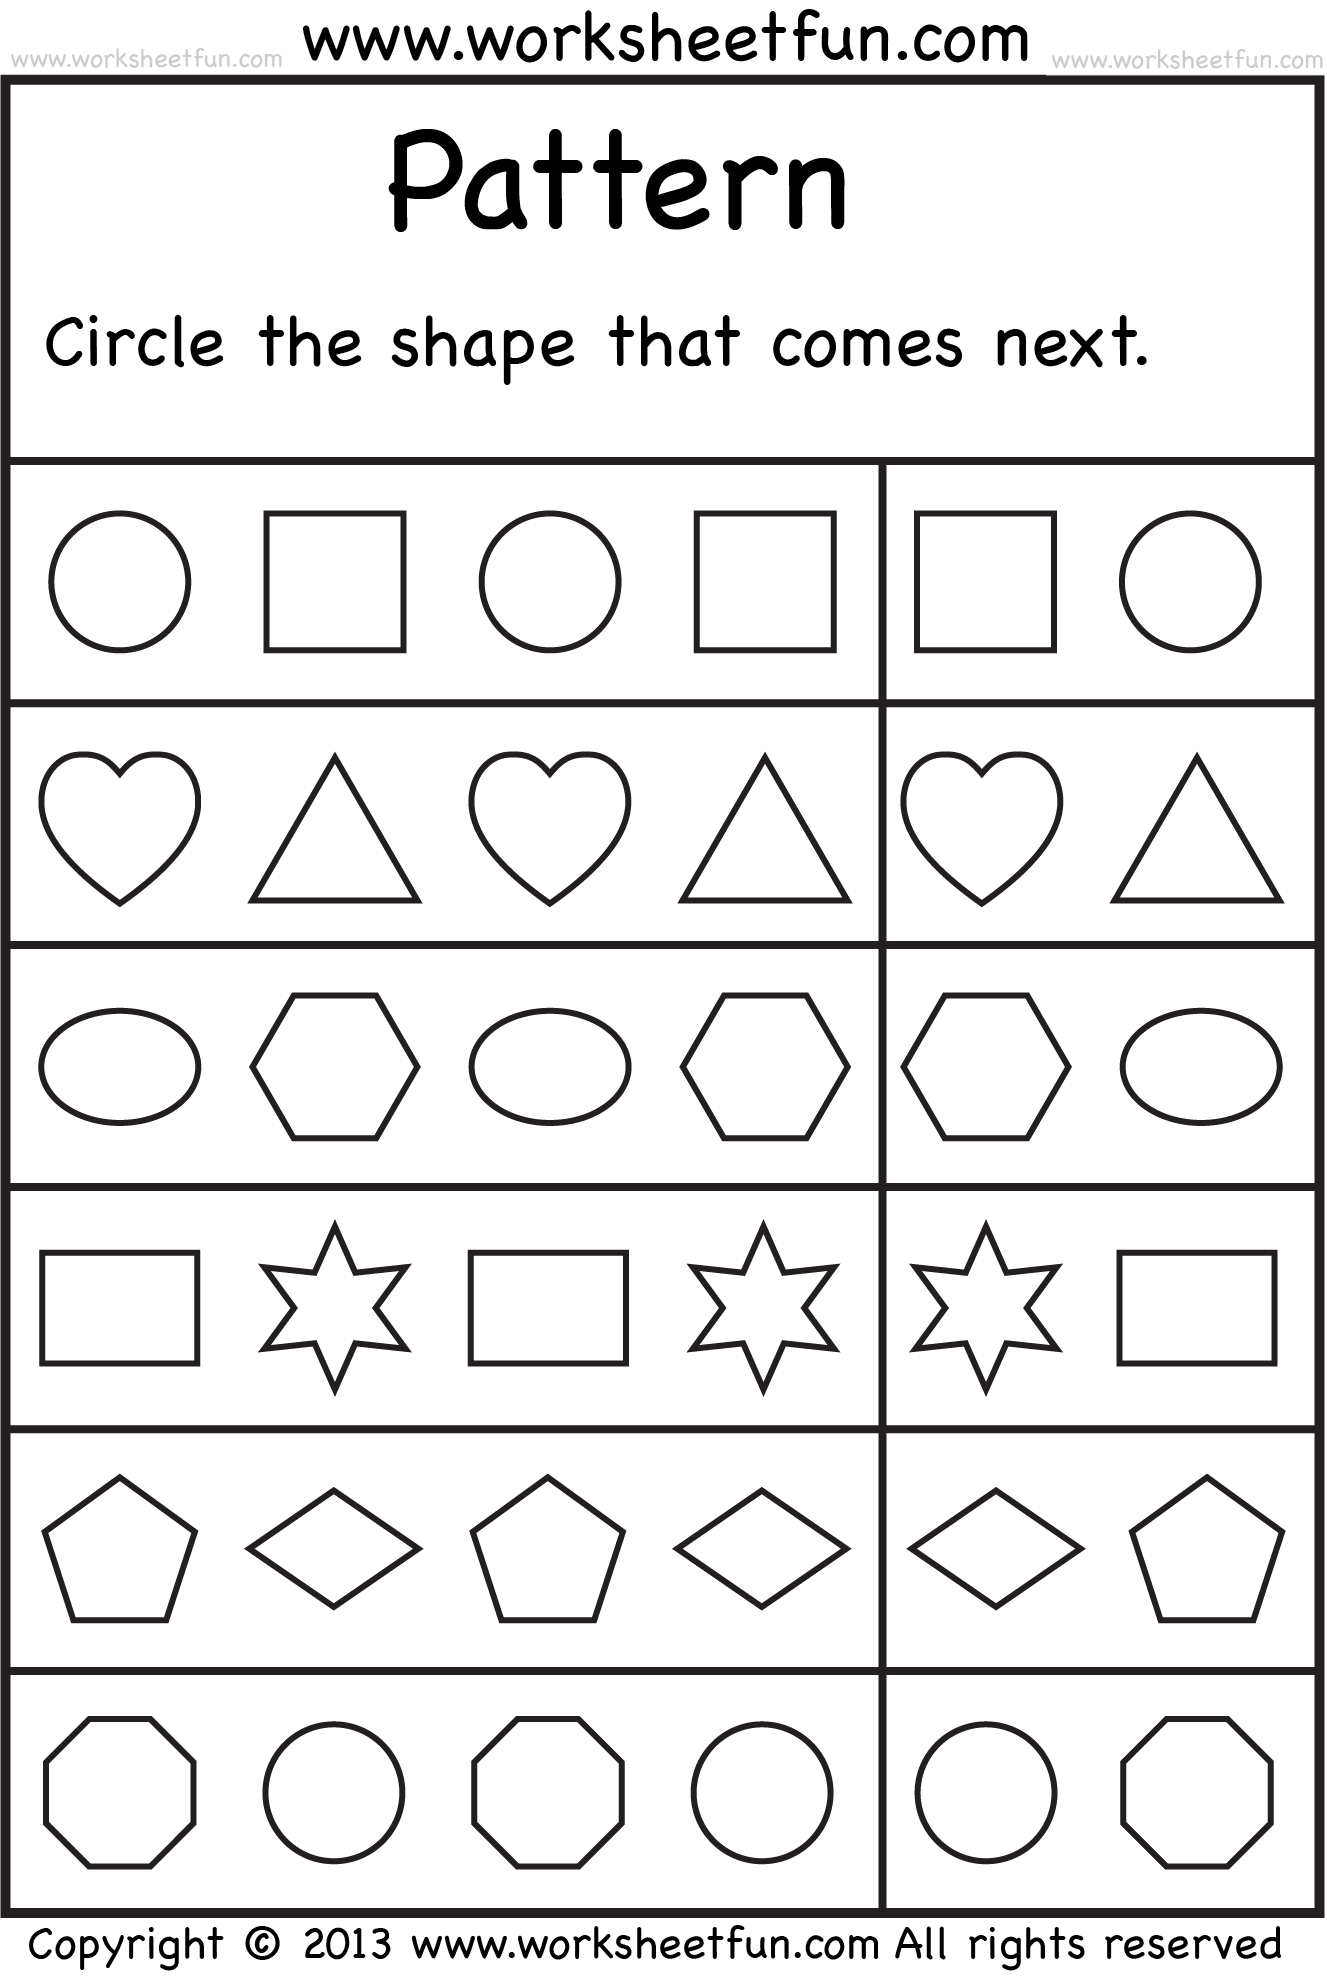 kindergarten worksheet   Pattern worksheets for kindergarten [ 1982 x 1327 Pixel ]